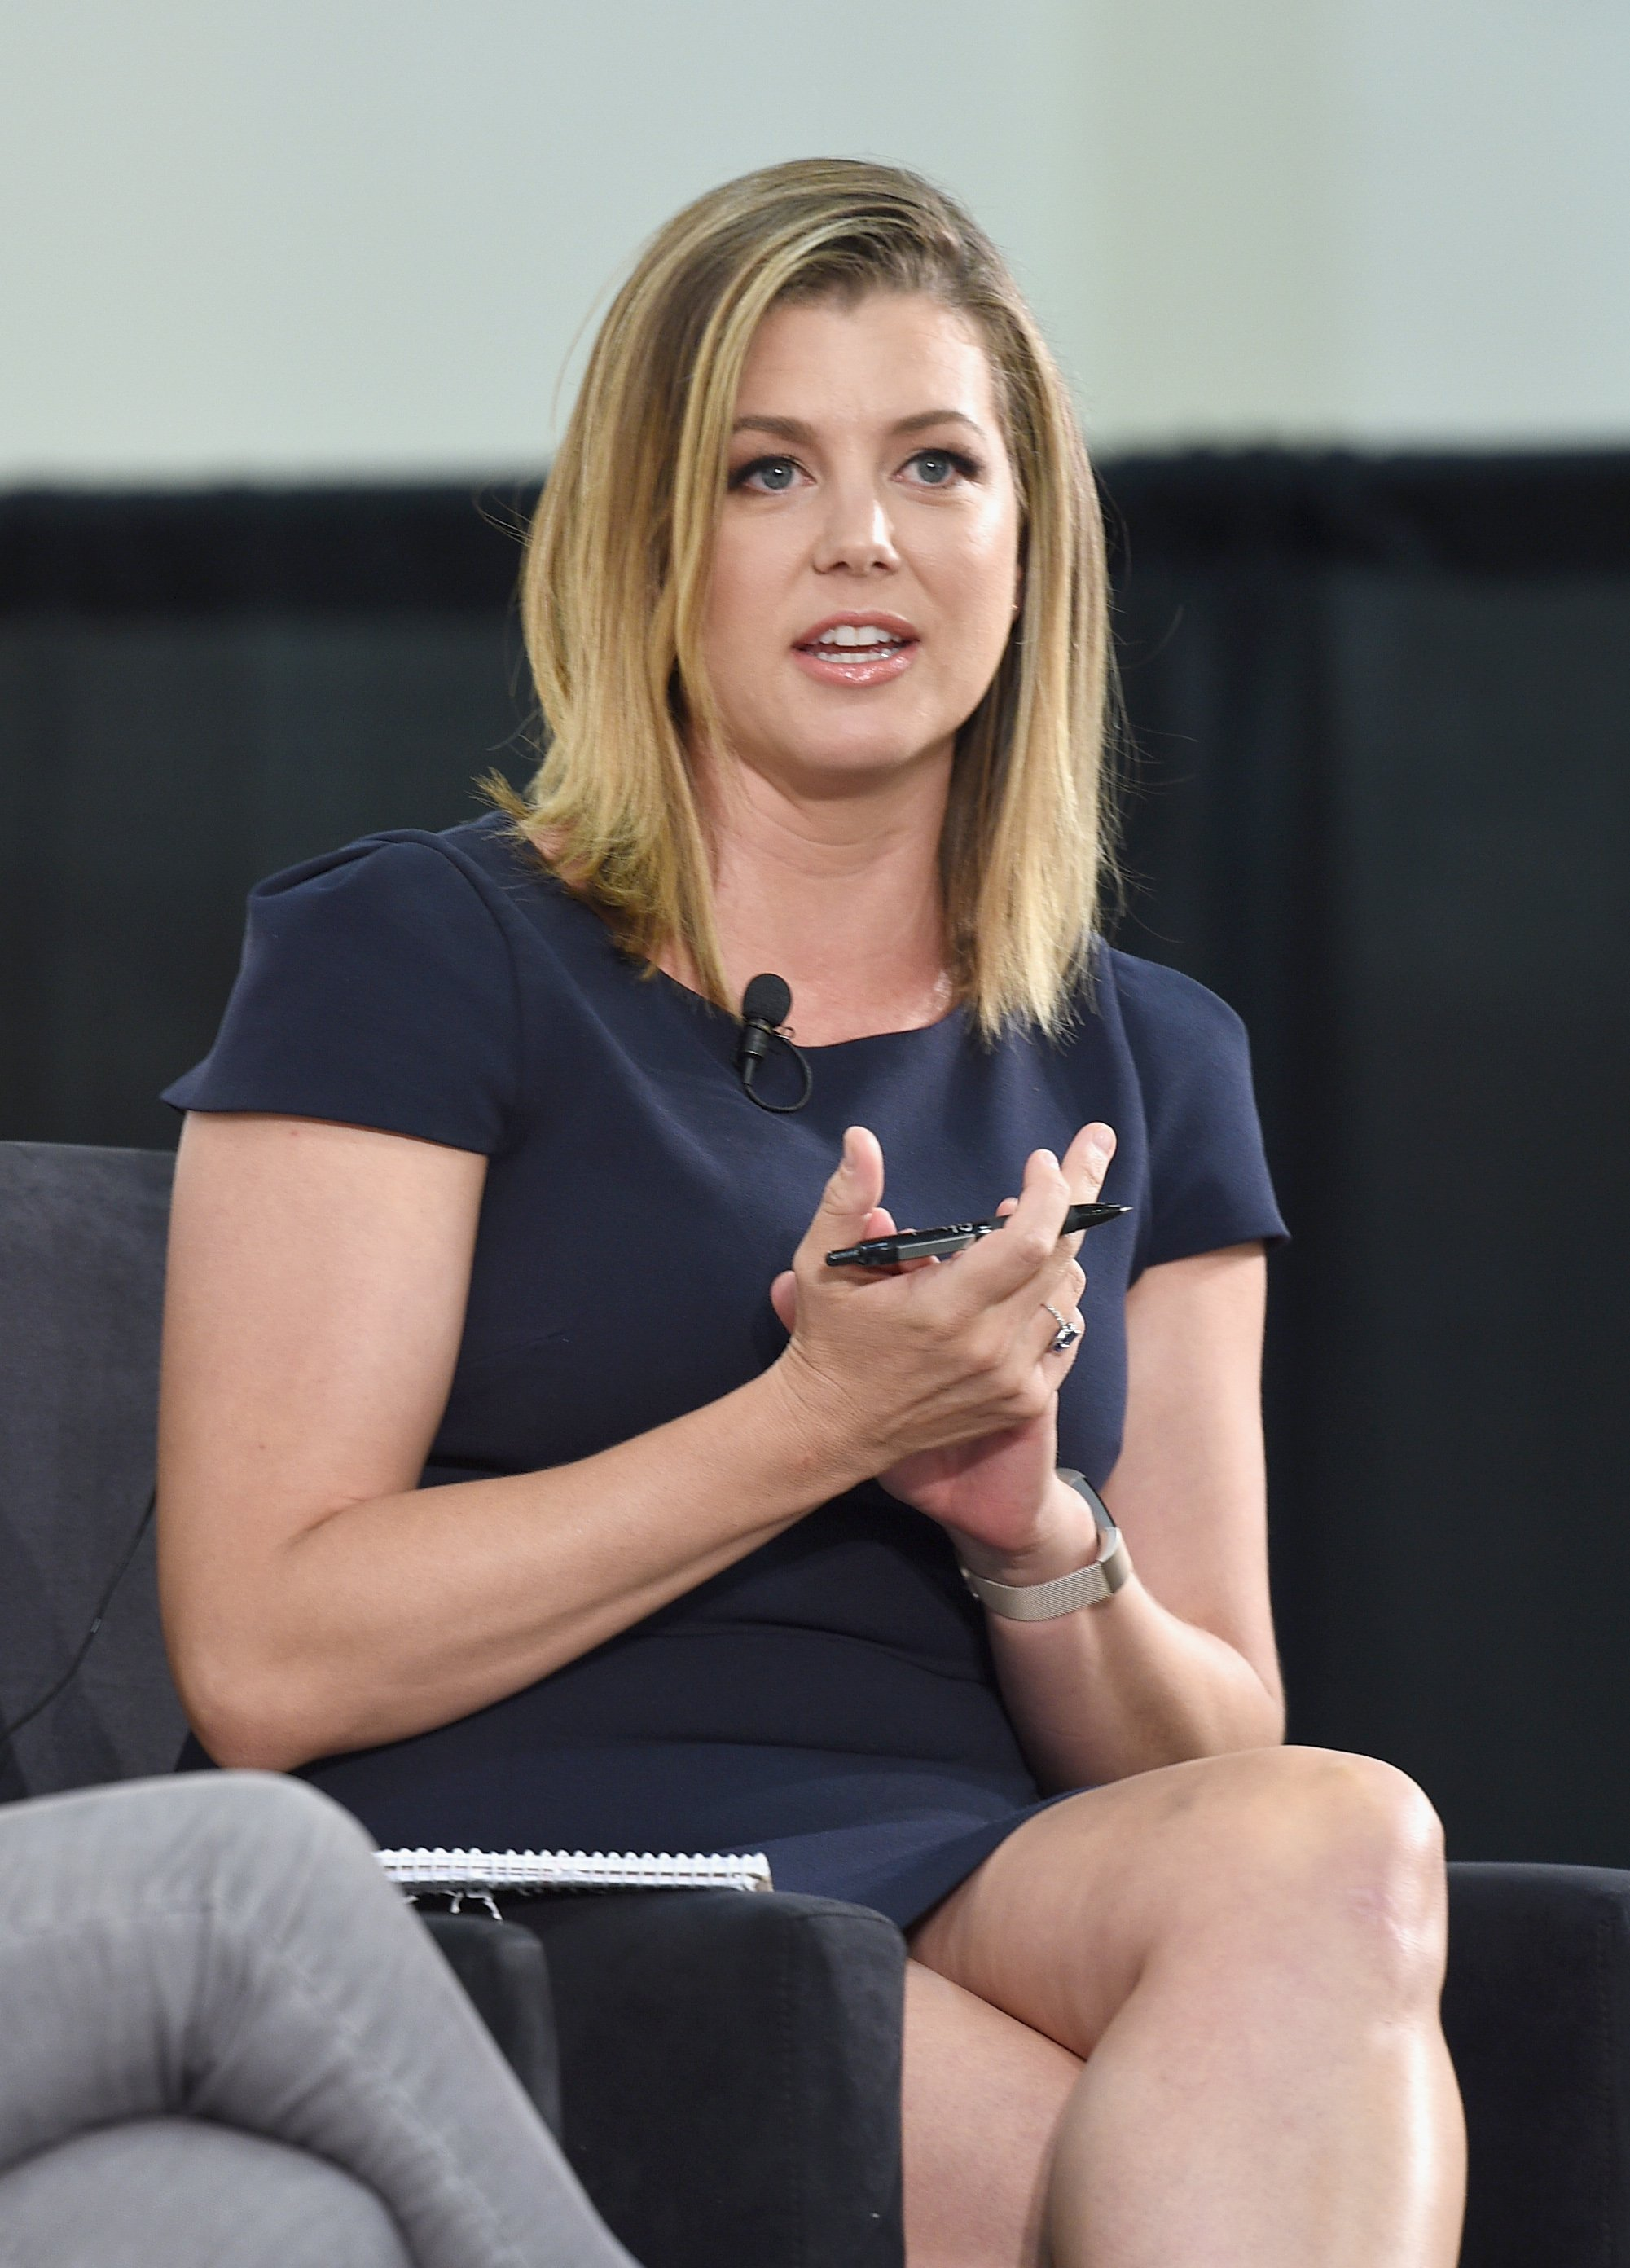 """Brianna Keilar at the """"Opioid Epidemic""""panel during Politicon at Pasadena Convention Center on July 29, 2017, in Pasadena, California 